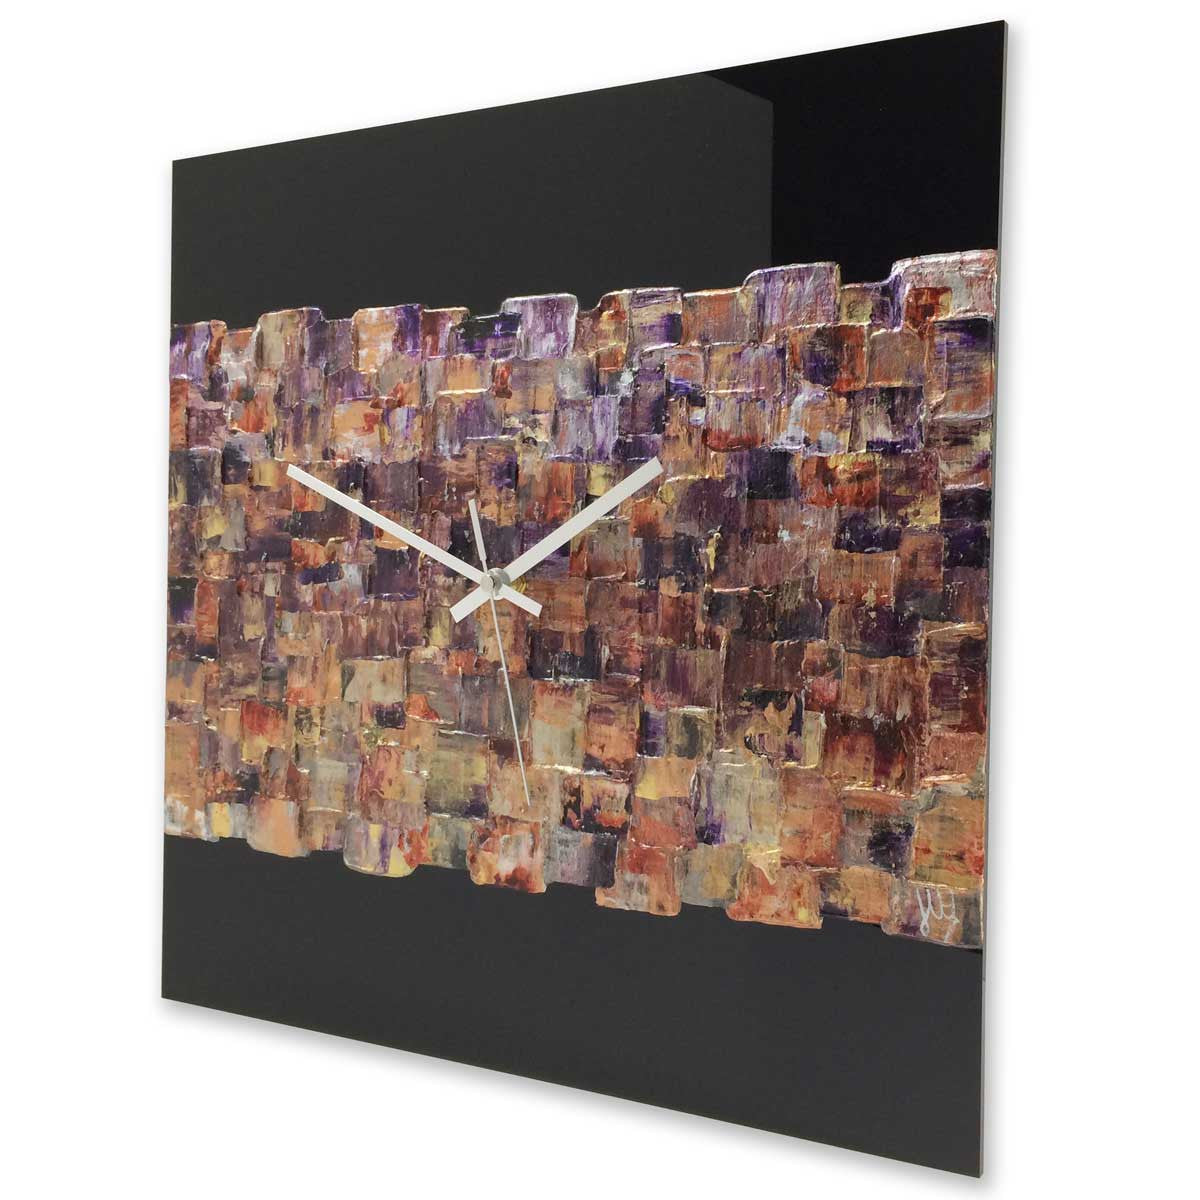 Square 40cm abstract wall clock on black plexiglass - JLH40SQ2